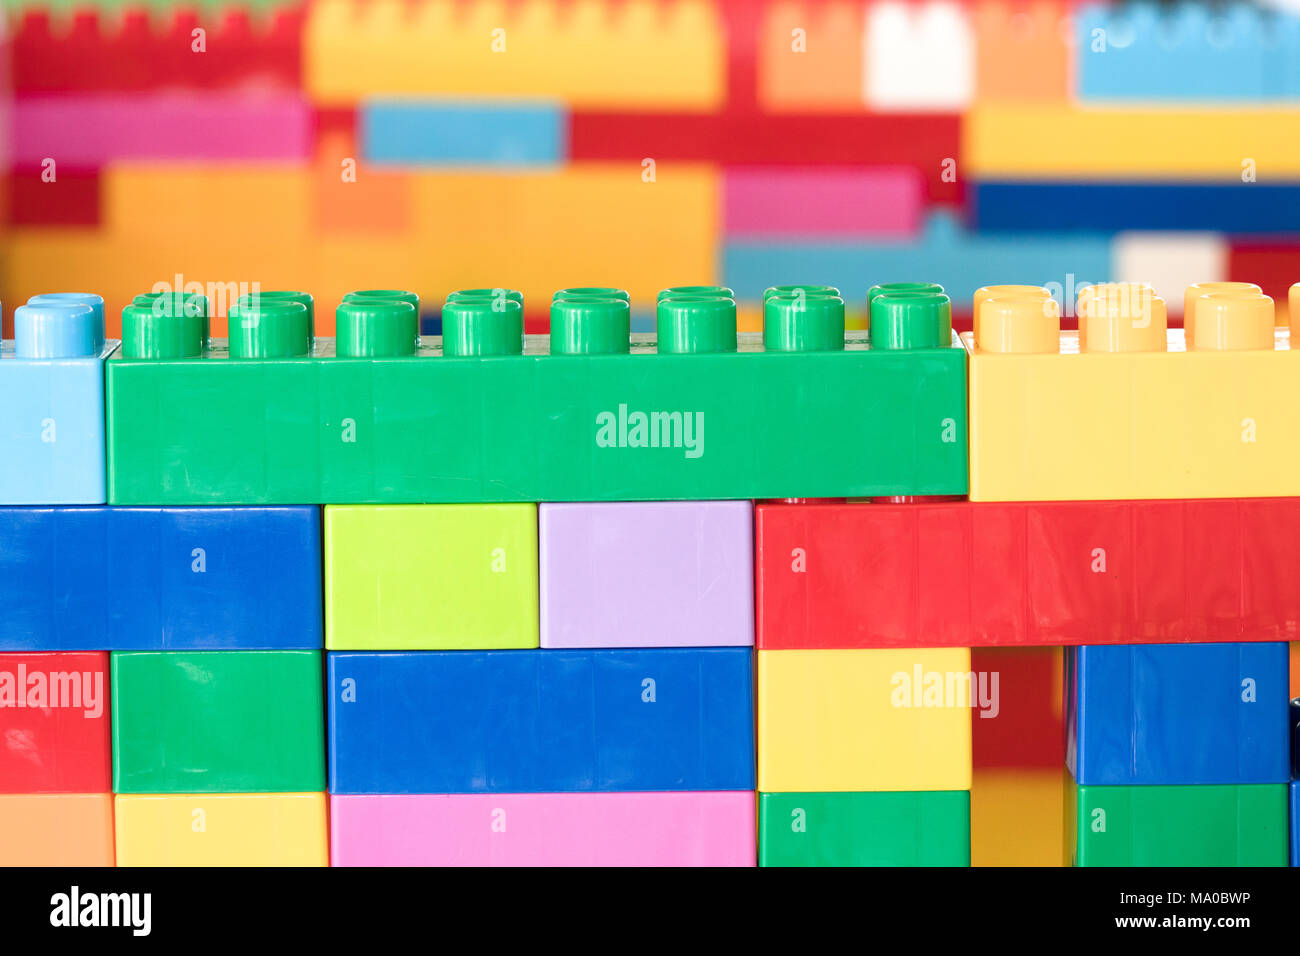 Colorful stacked toy plastic building blocks Stock Photo: 178259586